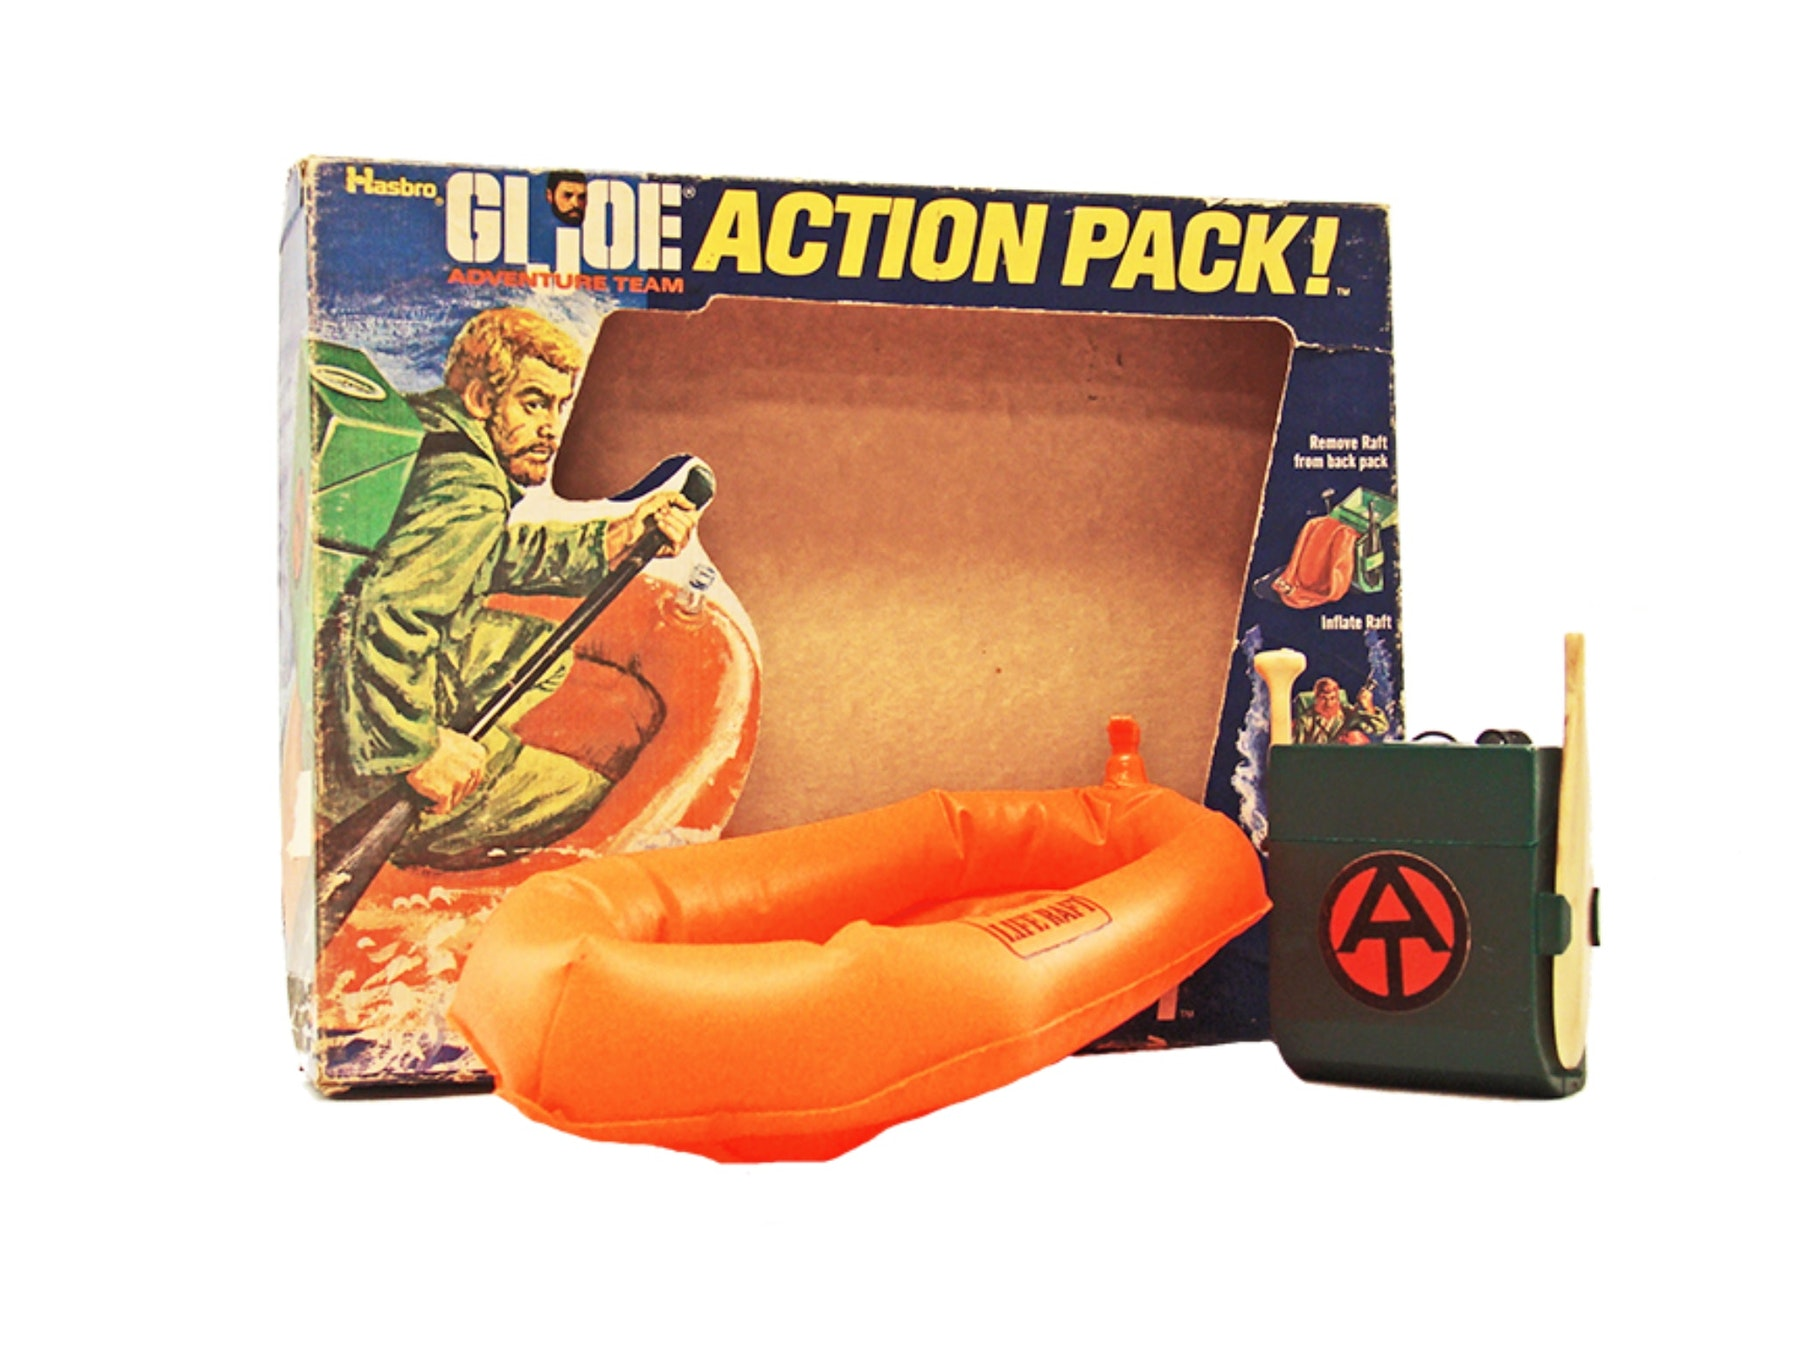 Action Pack Rescue Raft w/Box (No Inserts)